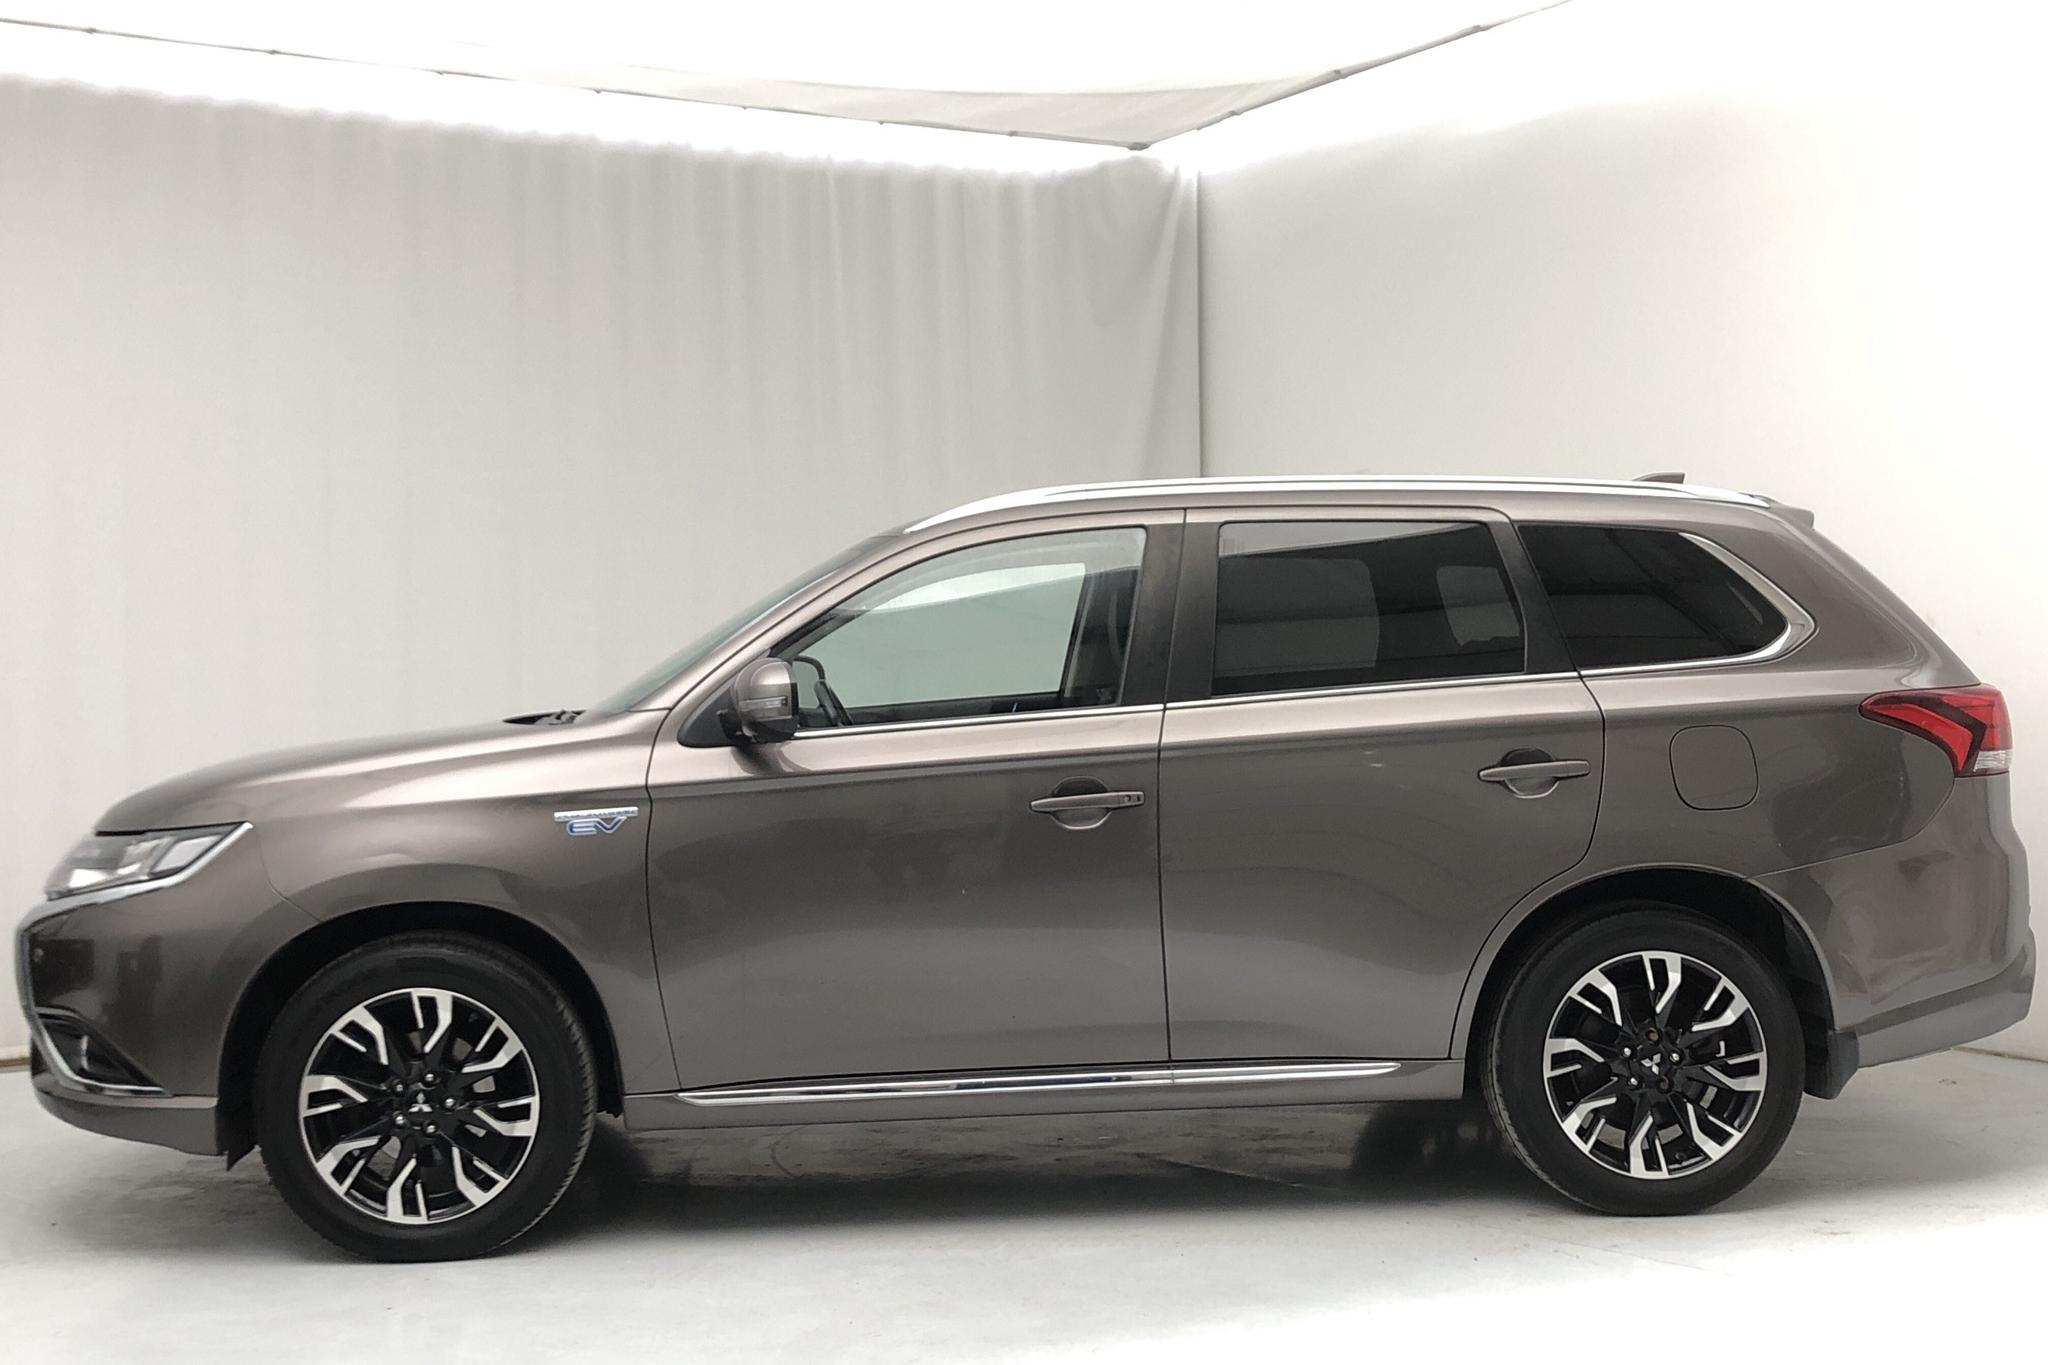 Mitsubishi Outlander 2.0 Plug-in Hybrid 4WD (121hk) - 50 760 km - Automatic - brown - 2017